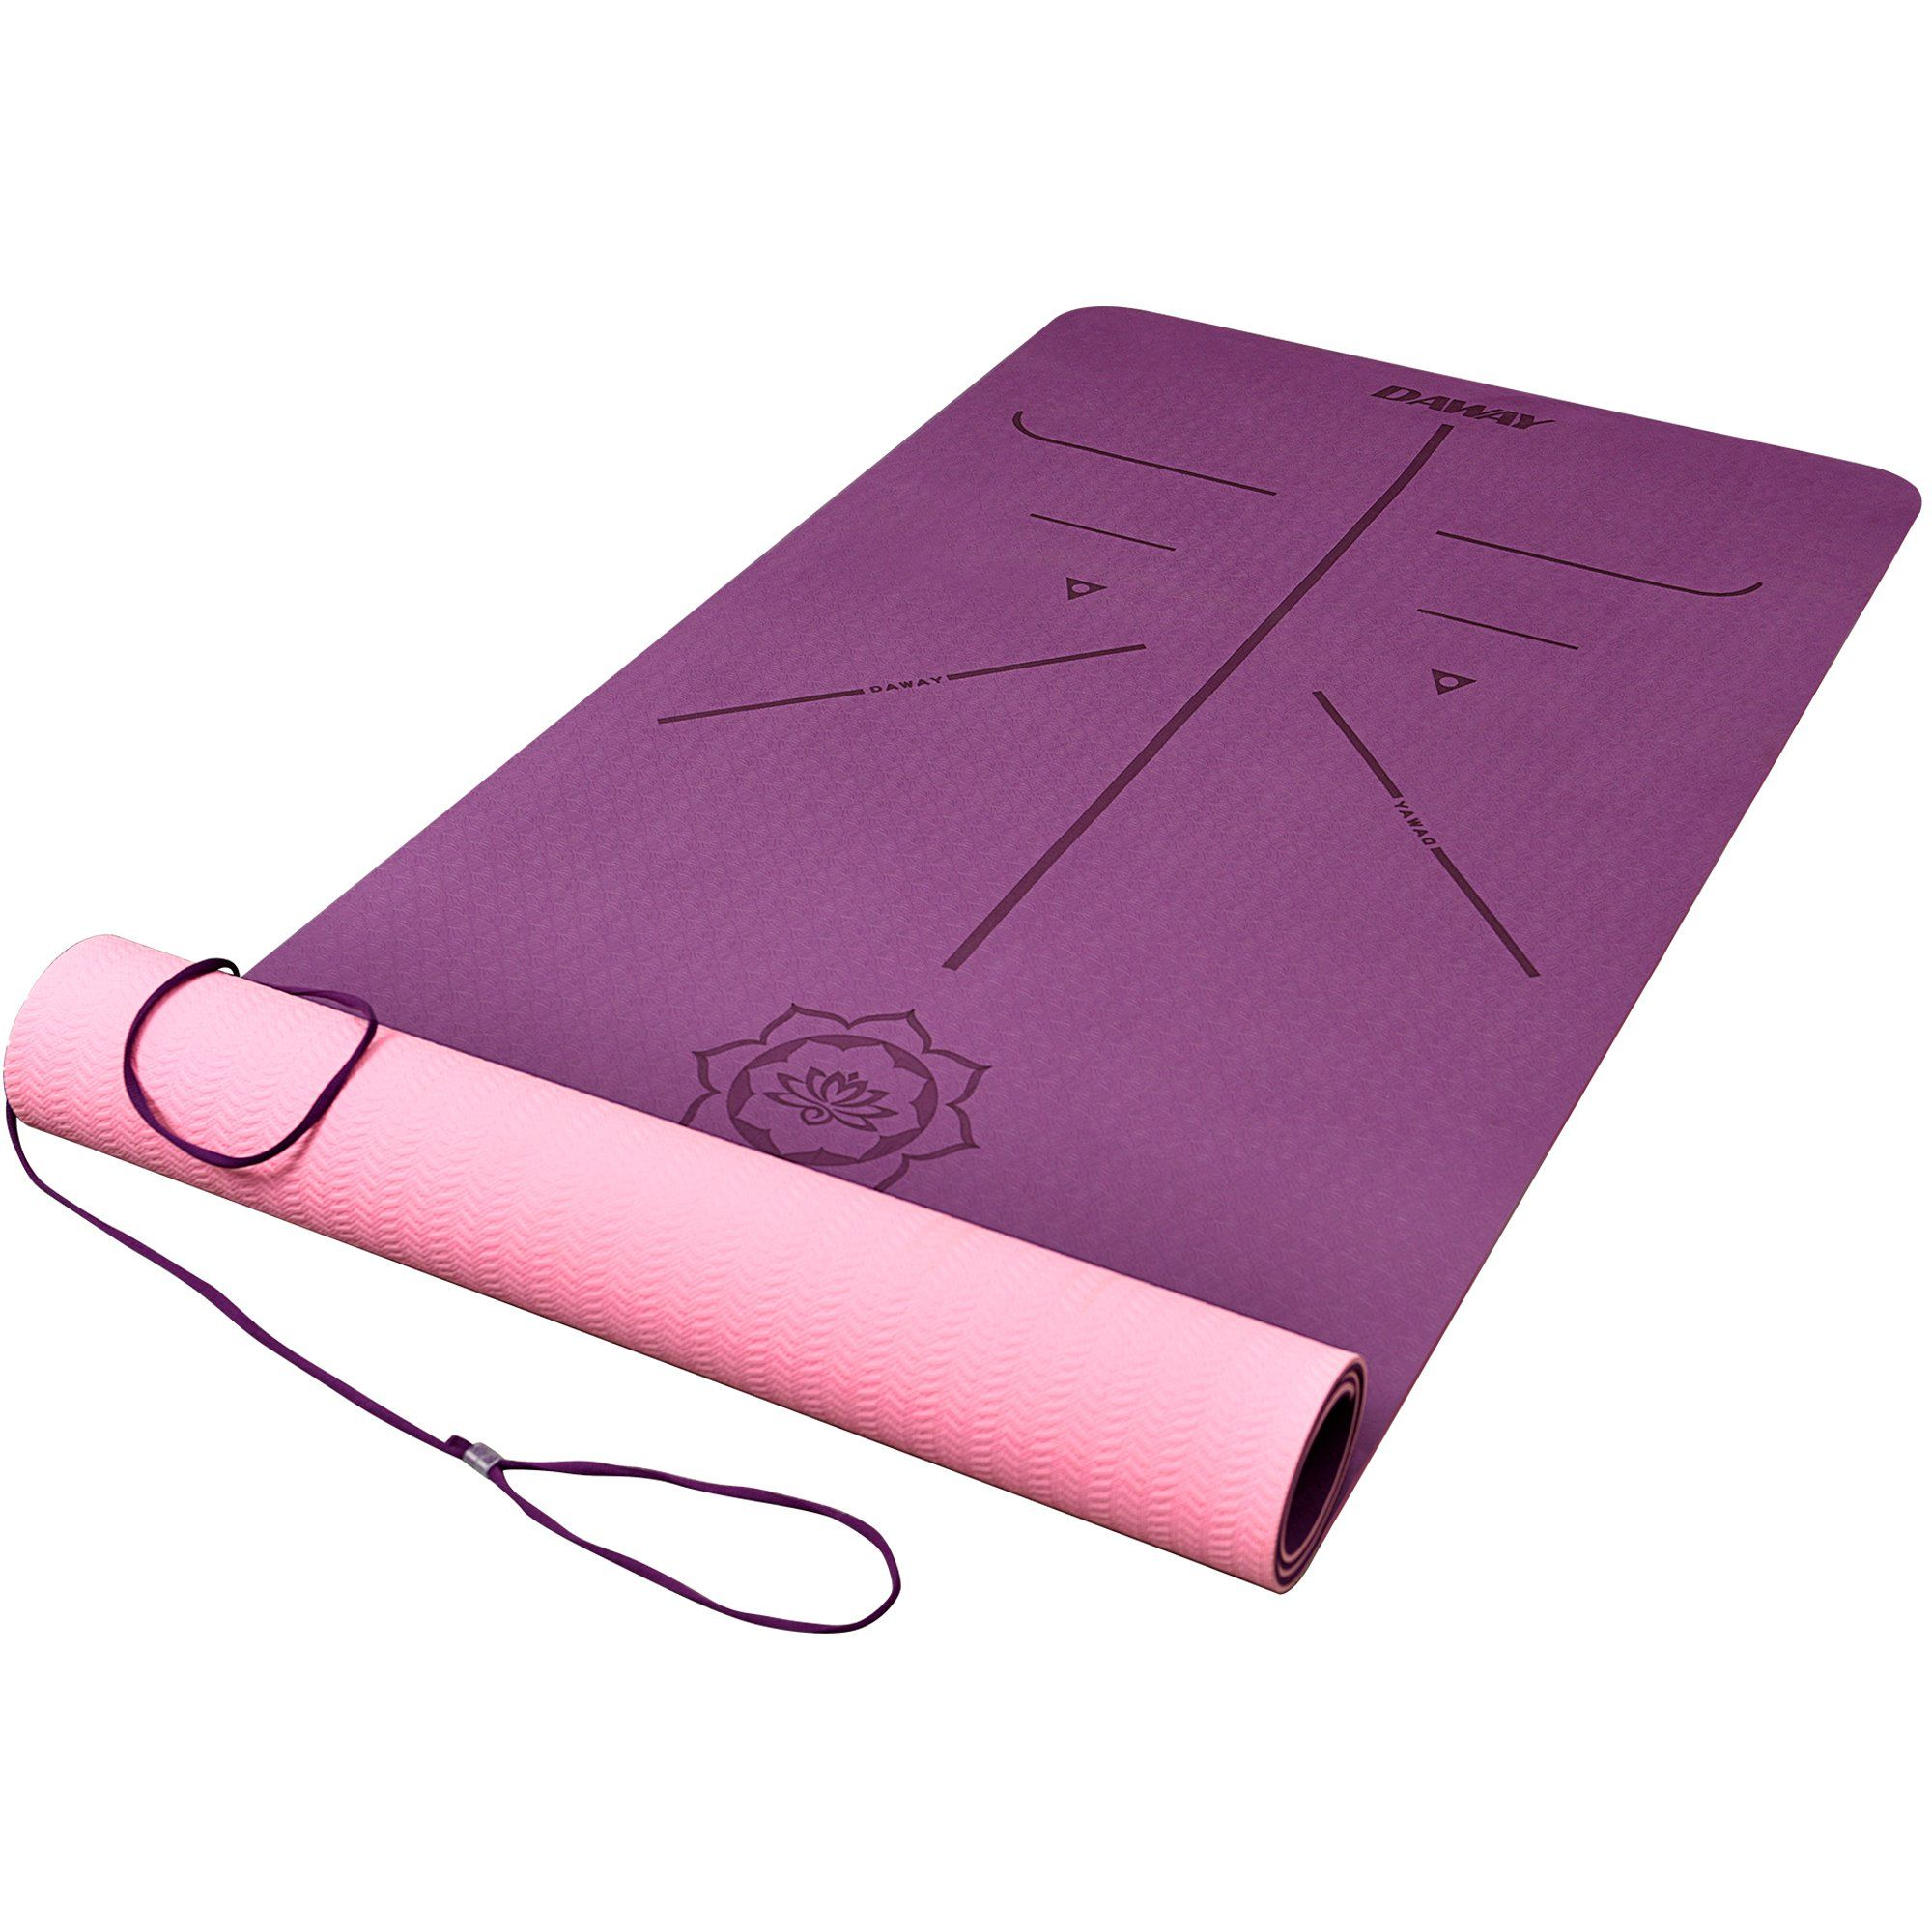 jadeyoga slateblue mat canada professional shop harmony mats the yoga best